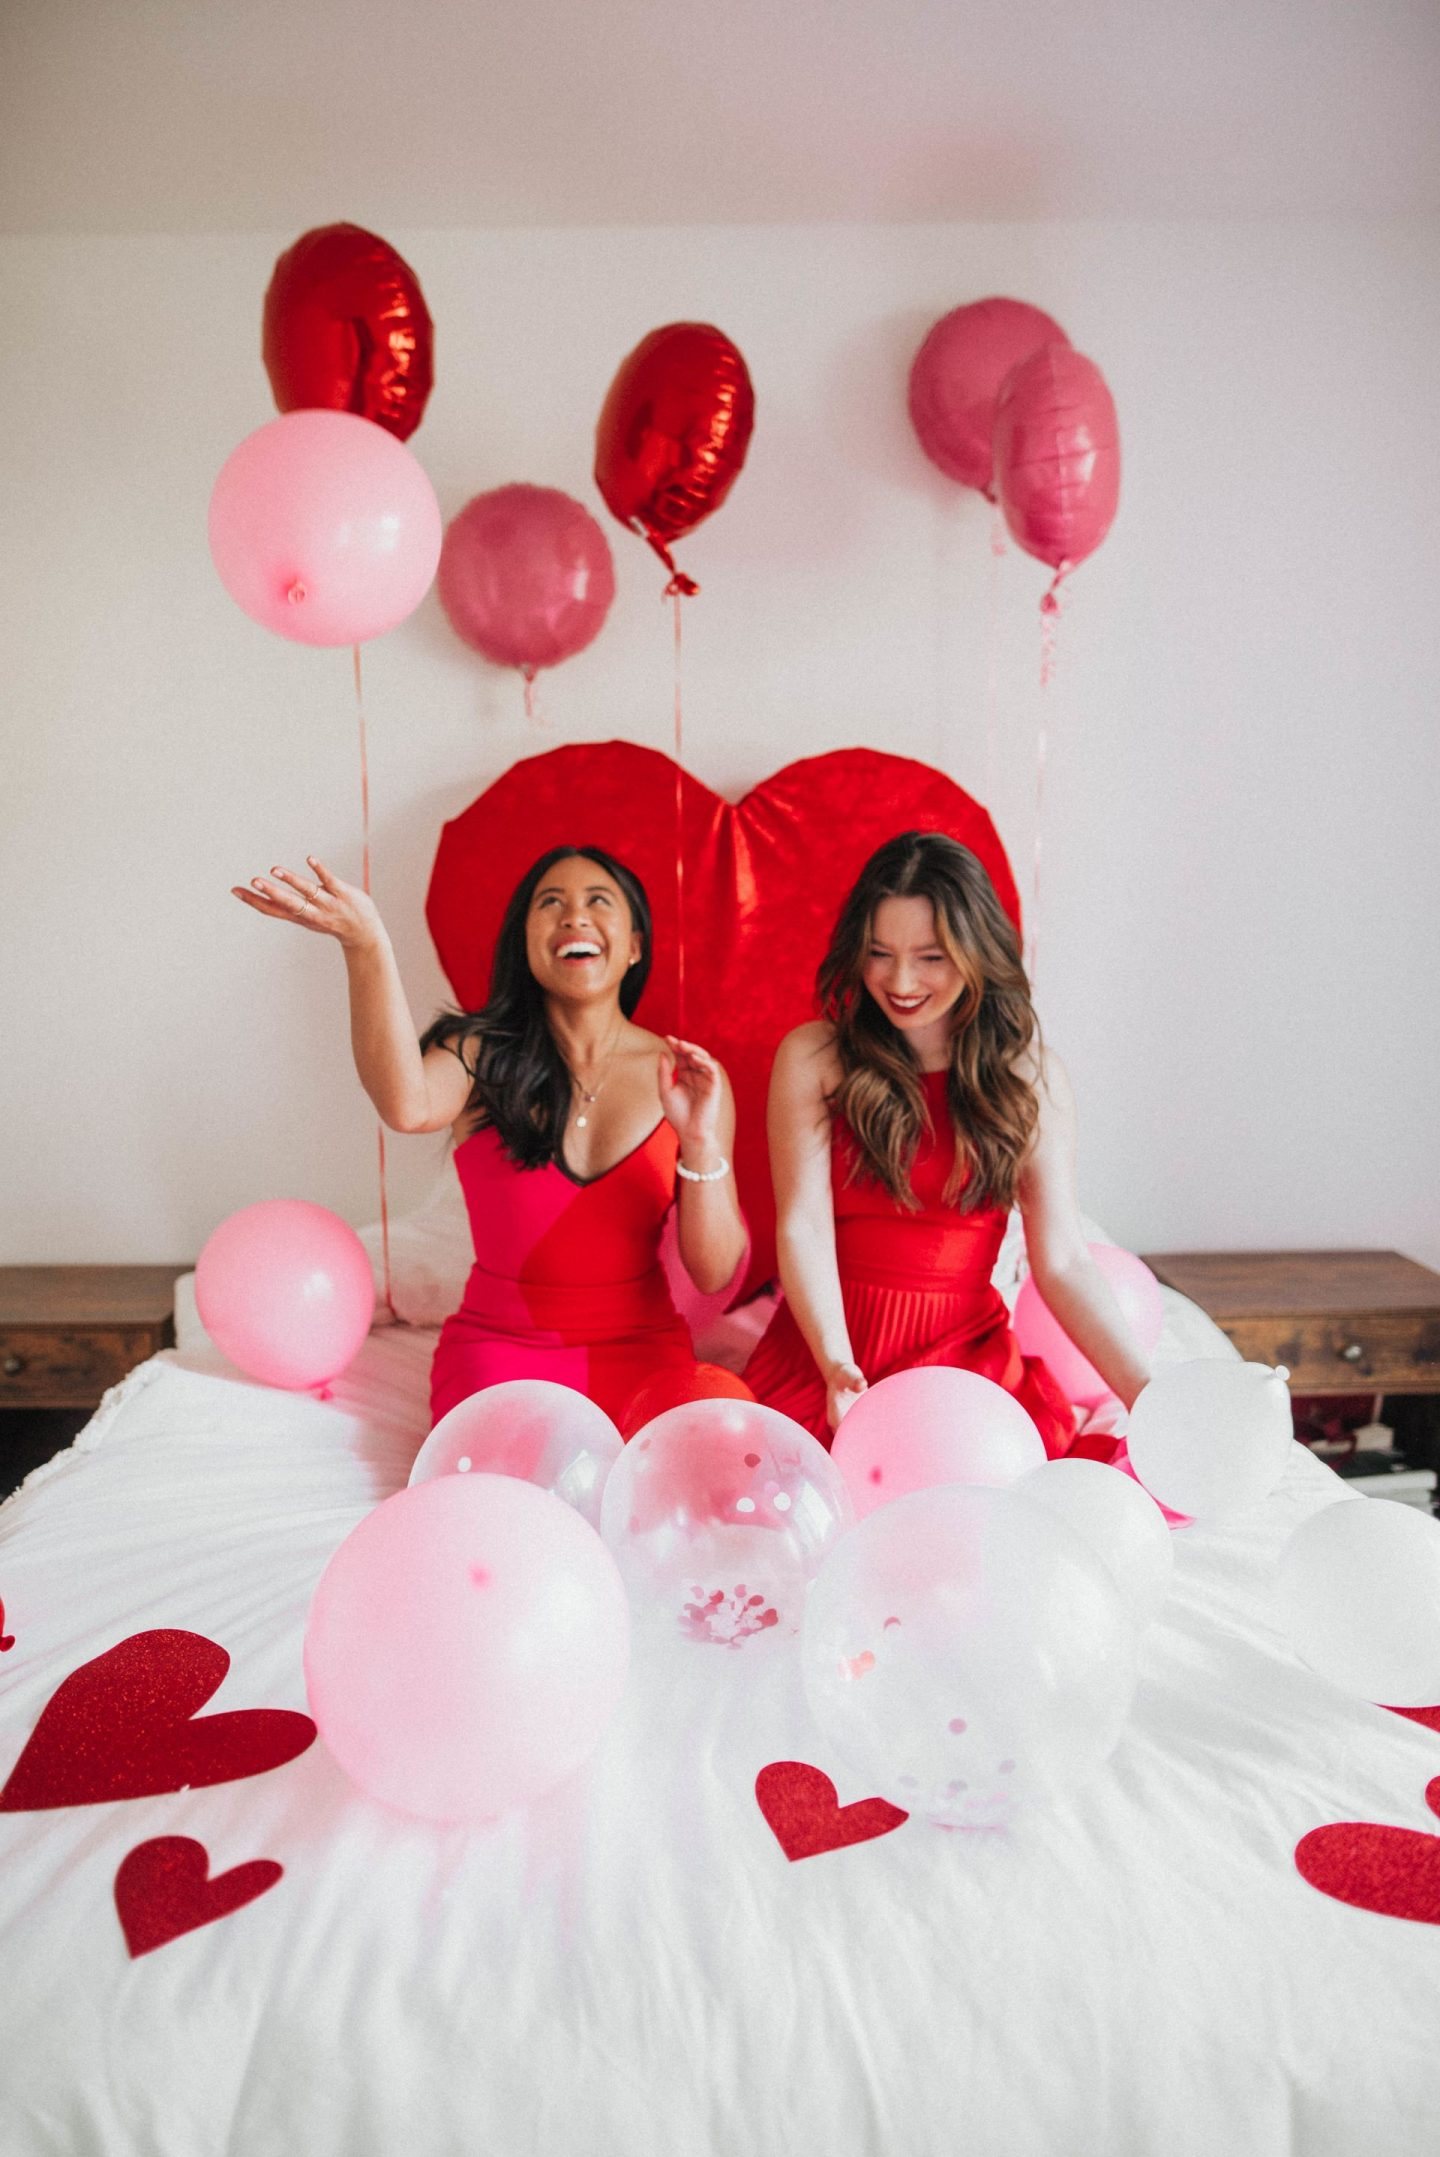 Balloon photo shoot ideas - best friend photo shoot ideas - birthday photo shoot ideas - DIY Valentine's Day Photo Shoot Ideas - Valentine's Day DIY crafts - Galentine's Day photo shoot ideas - Valentine's Day weekend - image from www.emmasedition.com - copyright @emmasedition